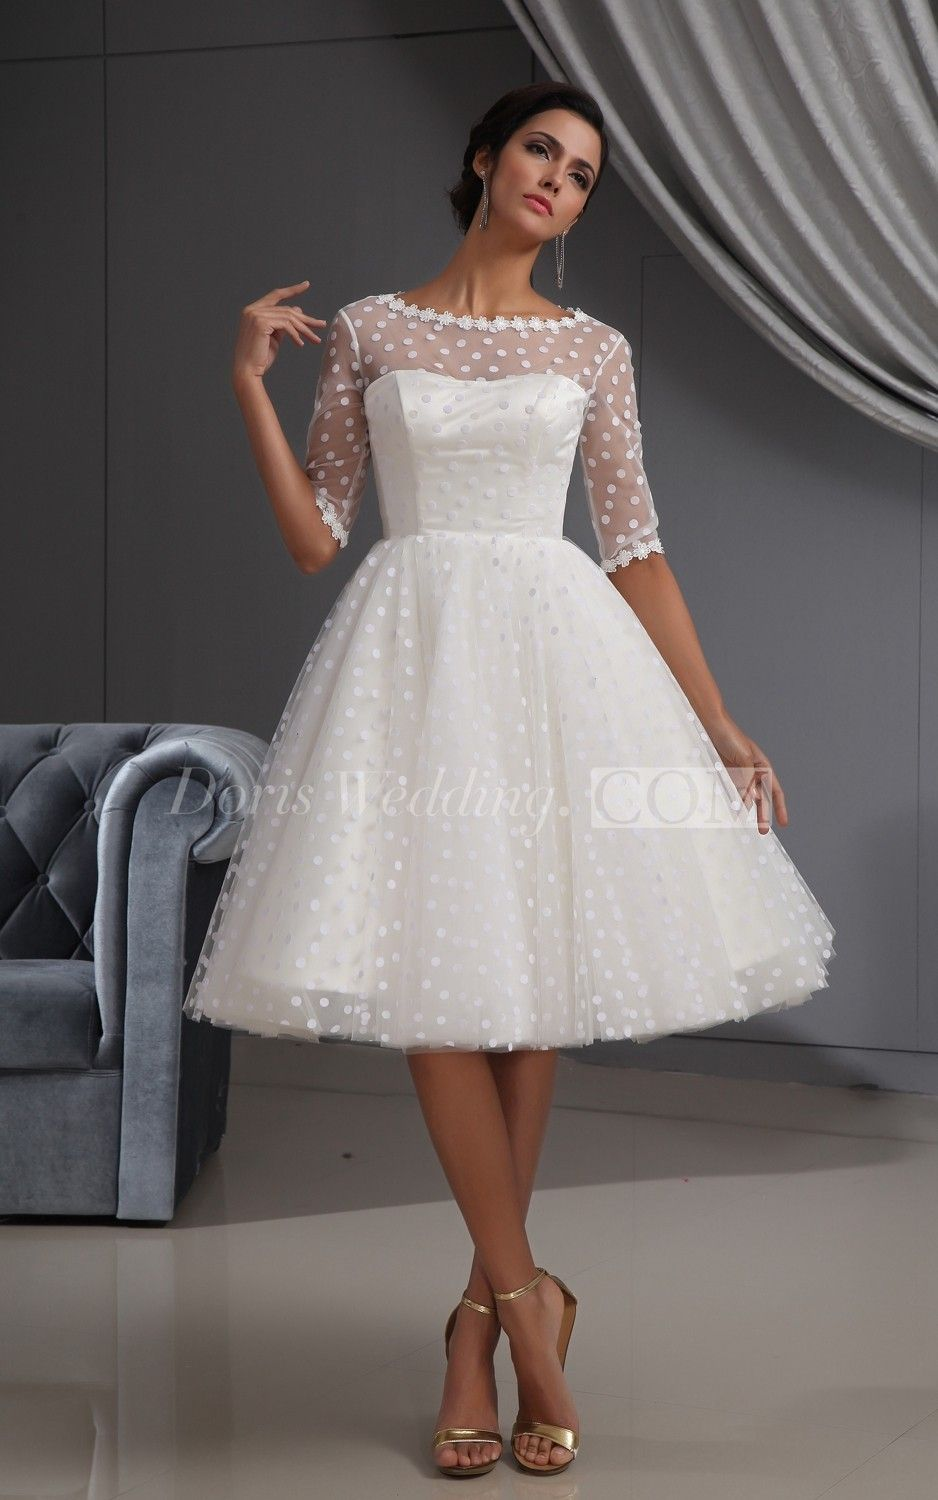 Half Sleeve Illusion Knee Length Short Dress With Lace And Dot Knee Length Wedding Dress Short Wedding Dress Lace Wedding Dress With Sleeves